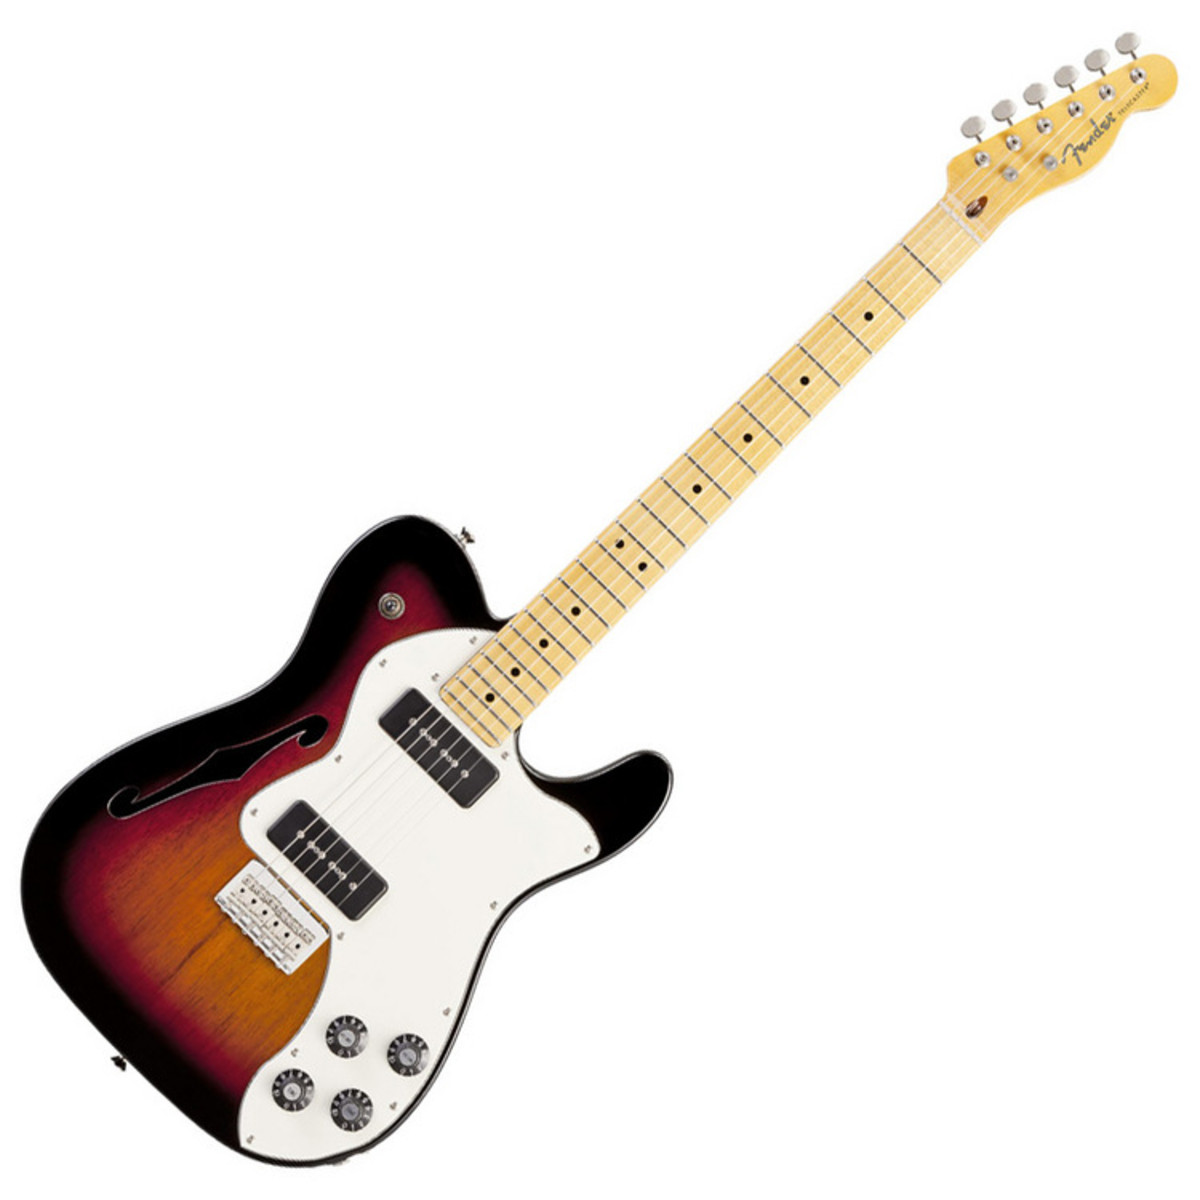 fender modern player telecaster thinline deluxe nearly new at. Black Bedroom Furniture Sets. Home Design Ideas